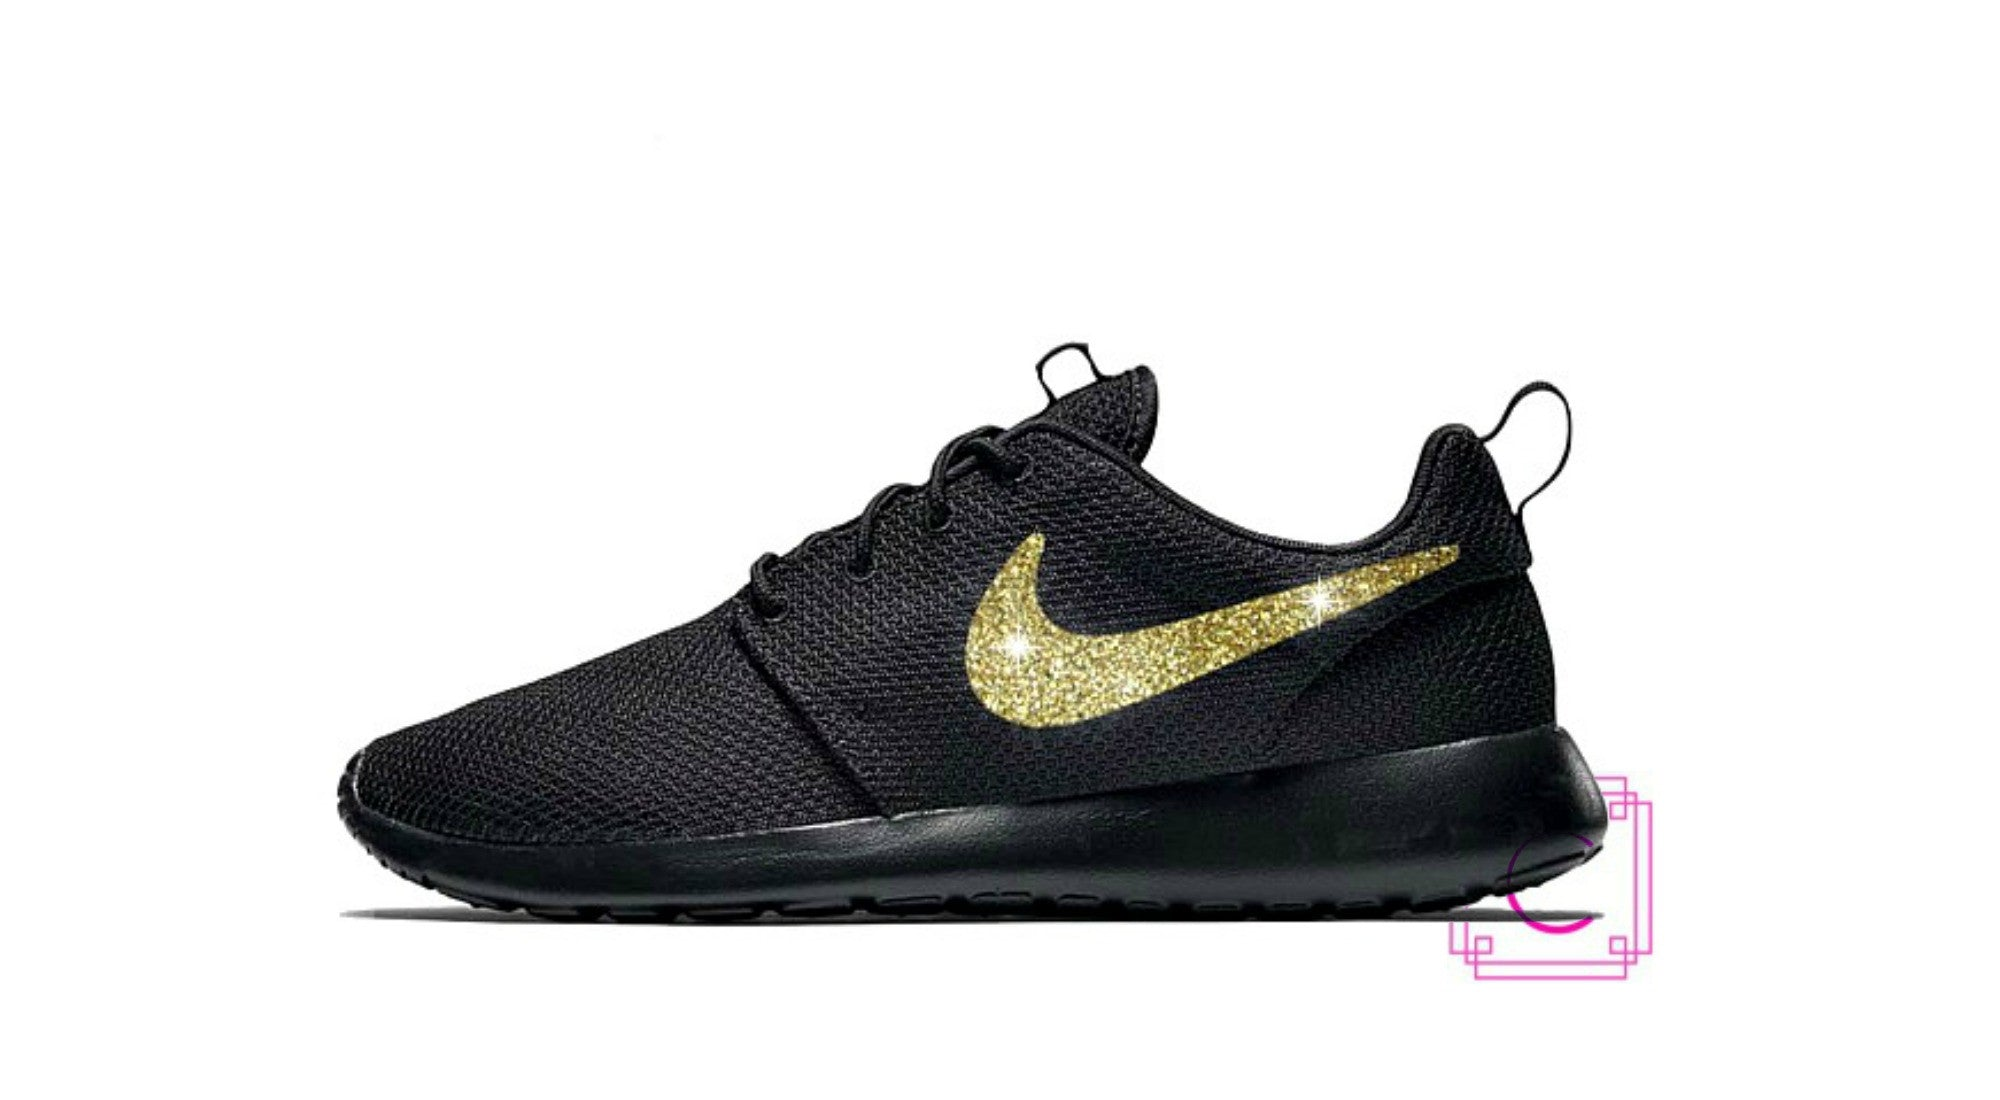 Women s Nike Roshe Two in all Black with Gold Glitter Swoosh detail 0743e57e24